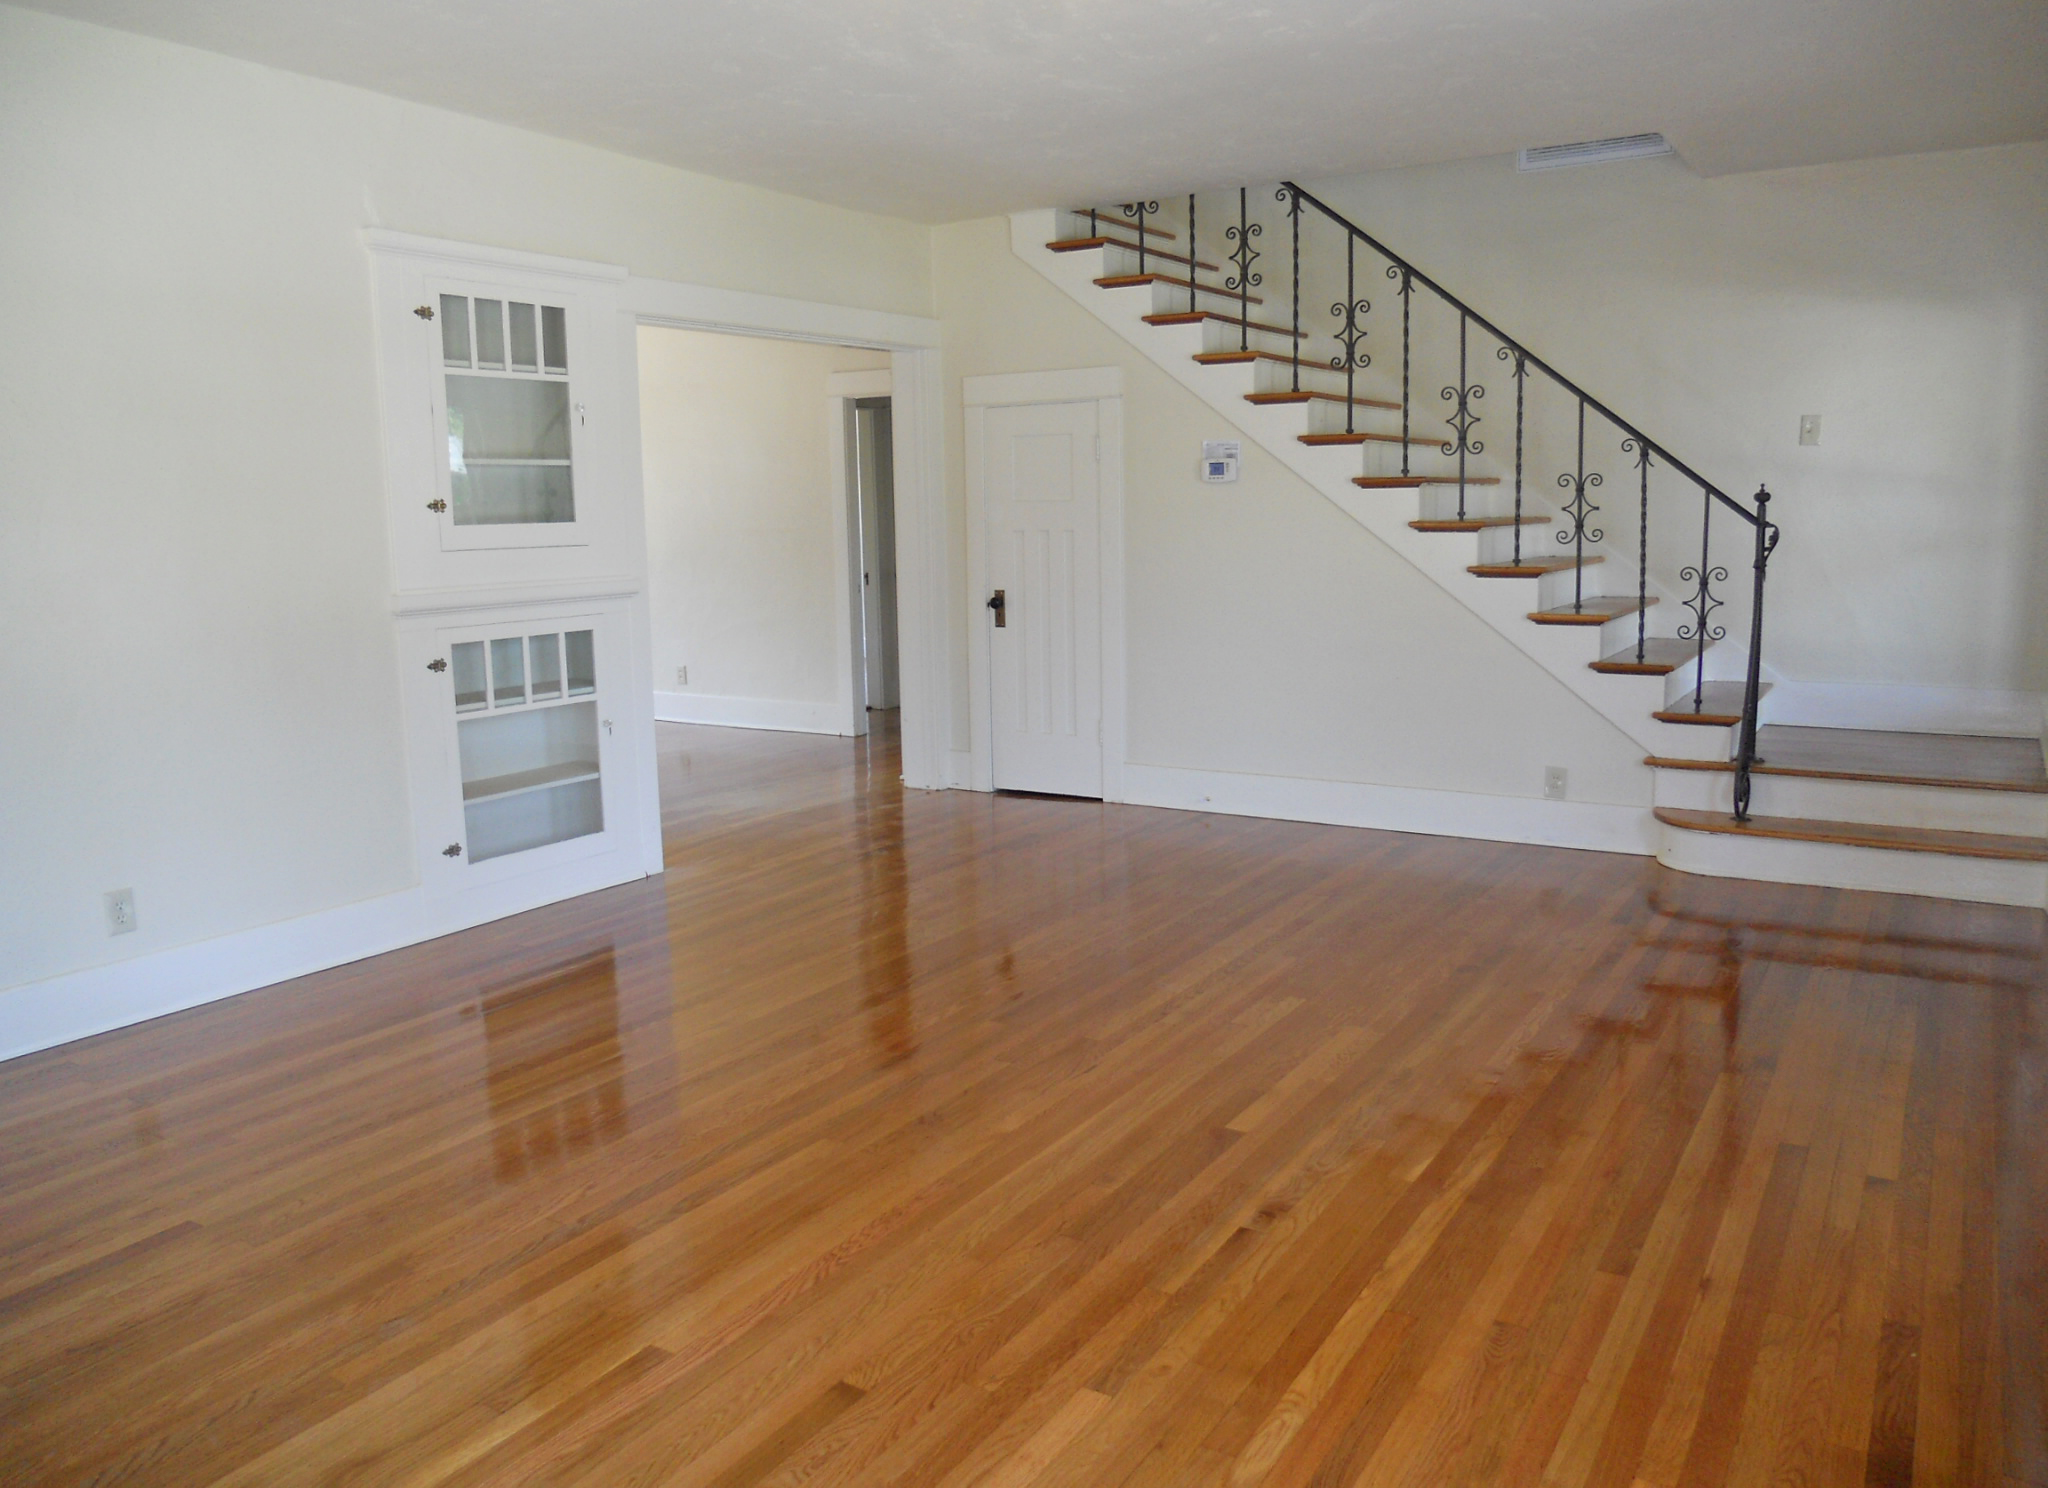 Alternate view of living room with entryway into formal dining room, and original stairway.